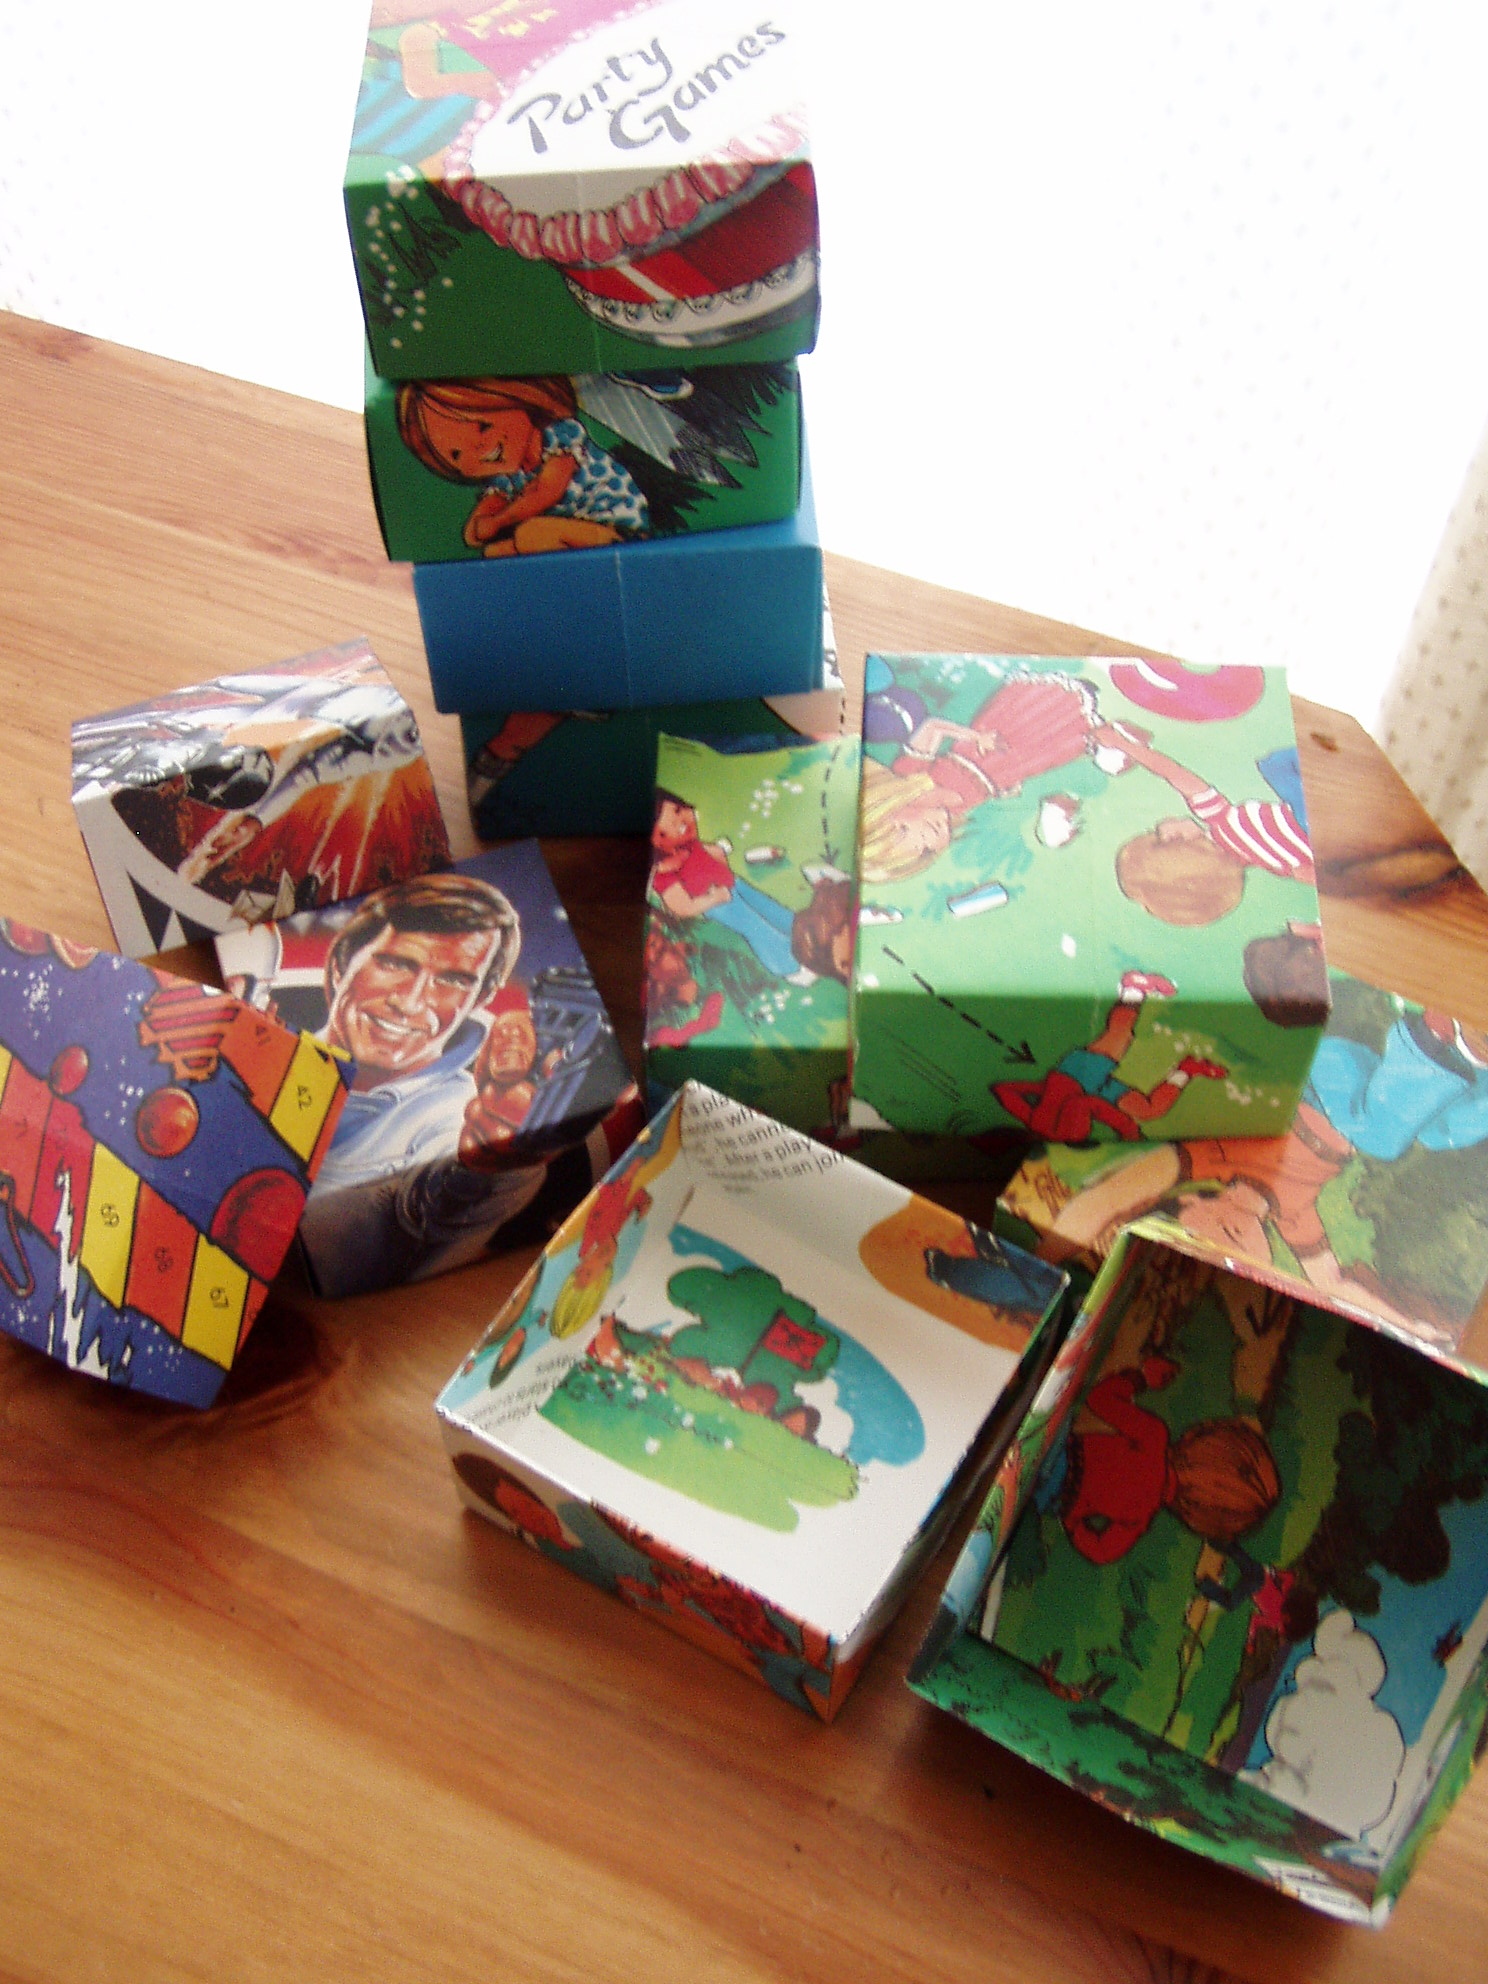 Picture of How to Make a Recycled Gift Box: